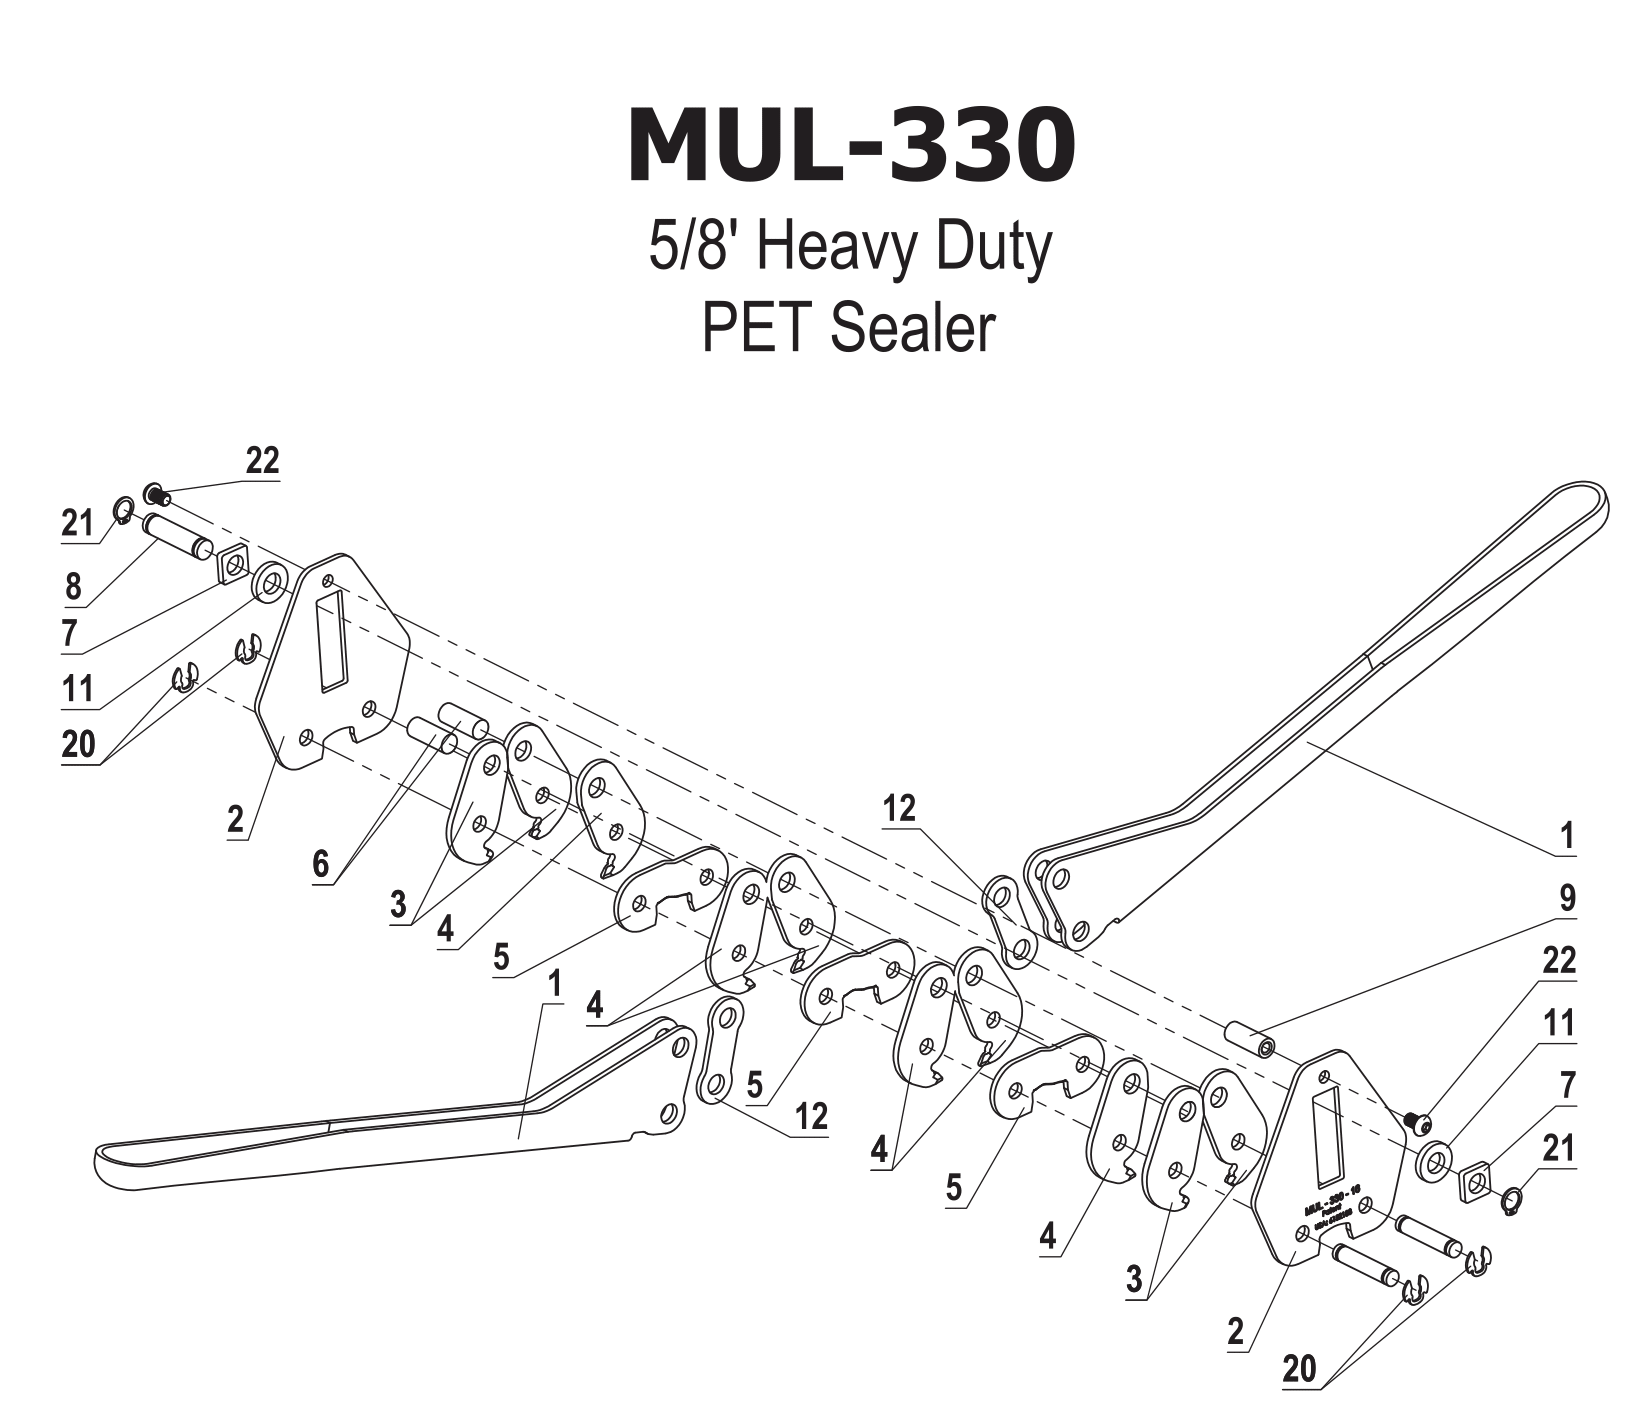 Parts For Mul 330 Heavy Duty Symmetrical Sealer For